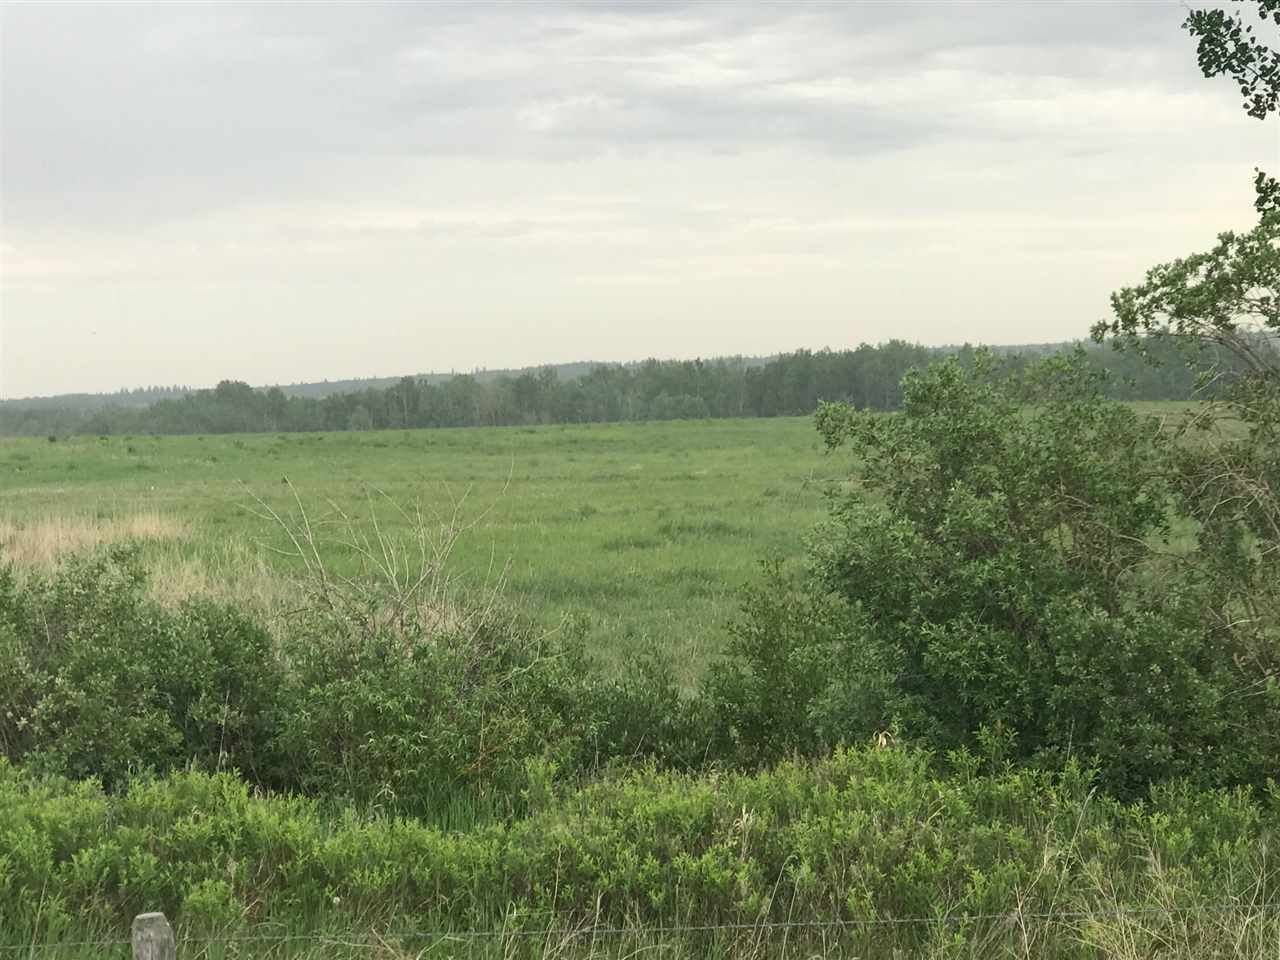 Main Photo: TWP 580 Rg Rd 240: Rural Sturgeon County Rural Land/Vacant Lot for sale : MLS®# E4248027